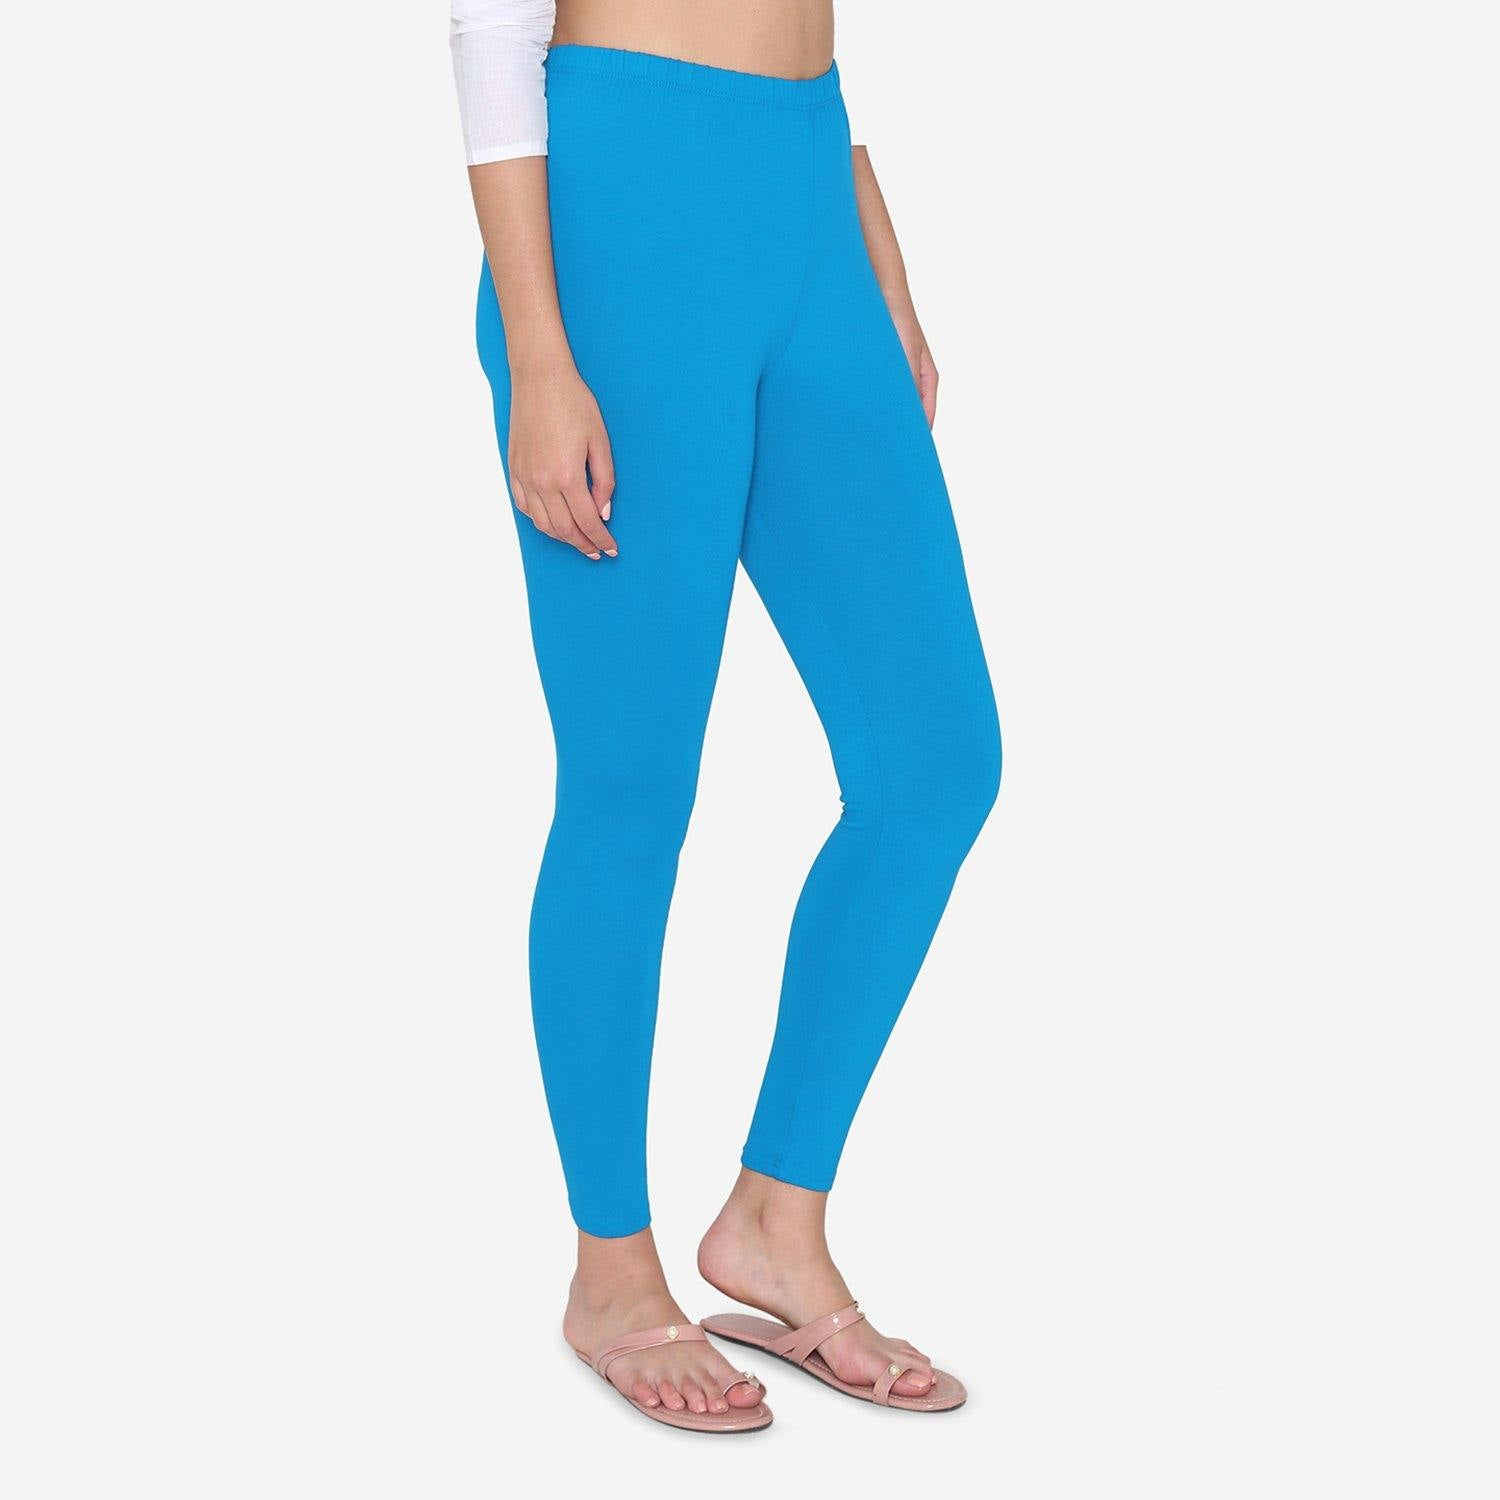 Ankle legging for Women